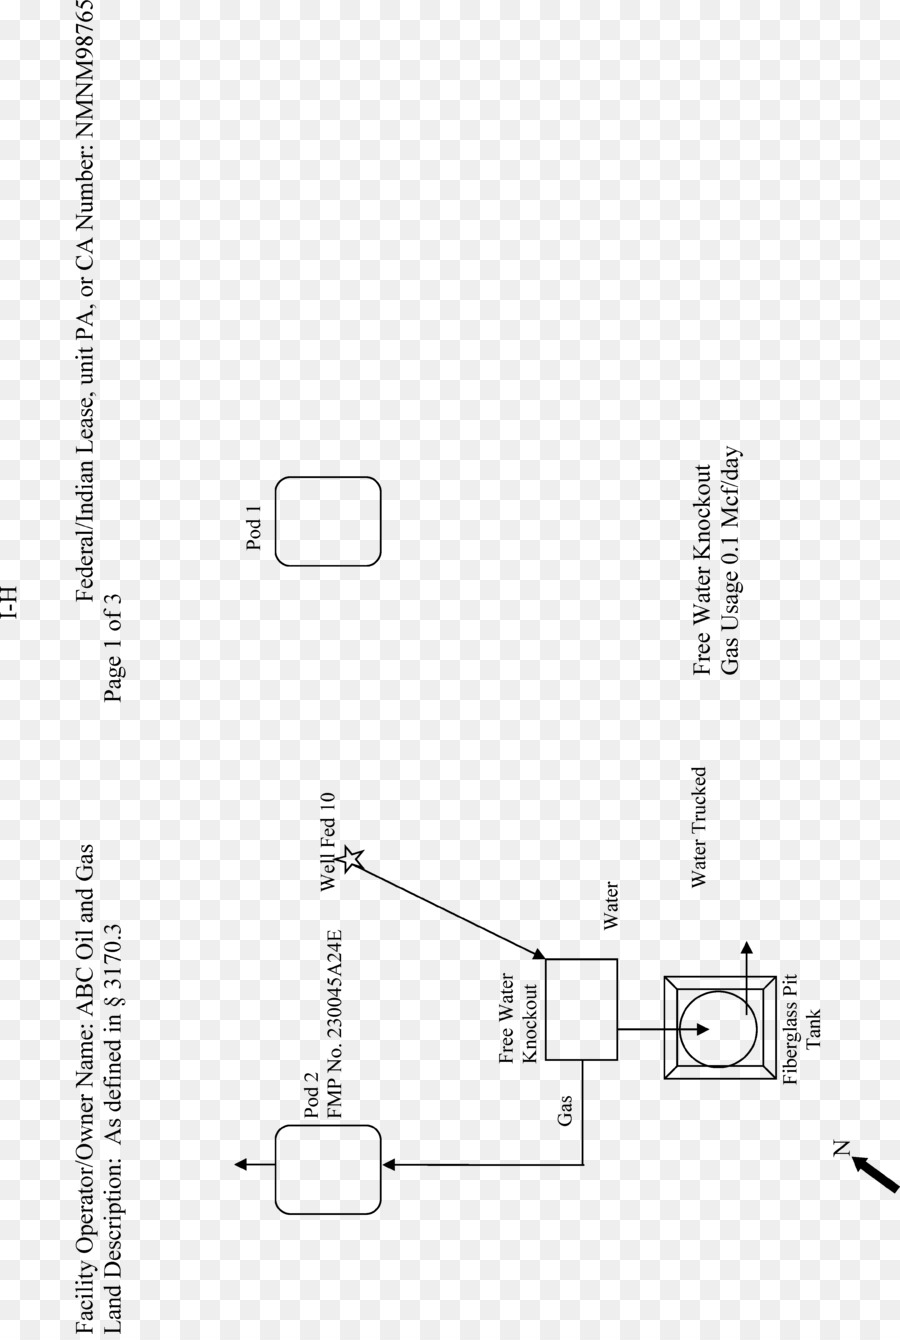 Sweet Crude Oil png download - 3599*5333 - Free Transparent Diagram